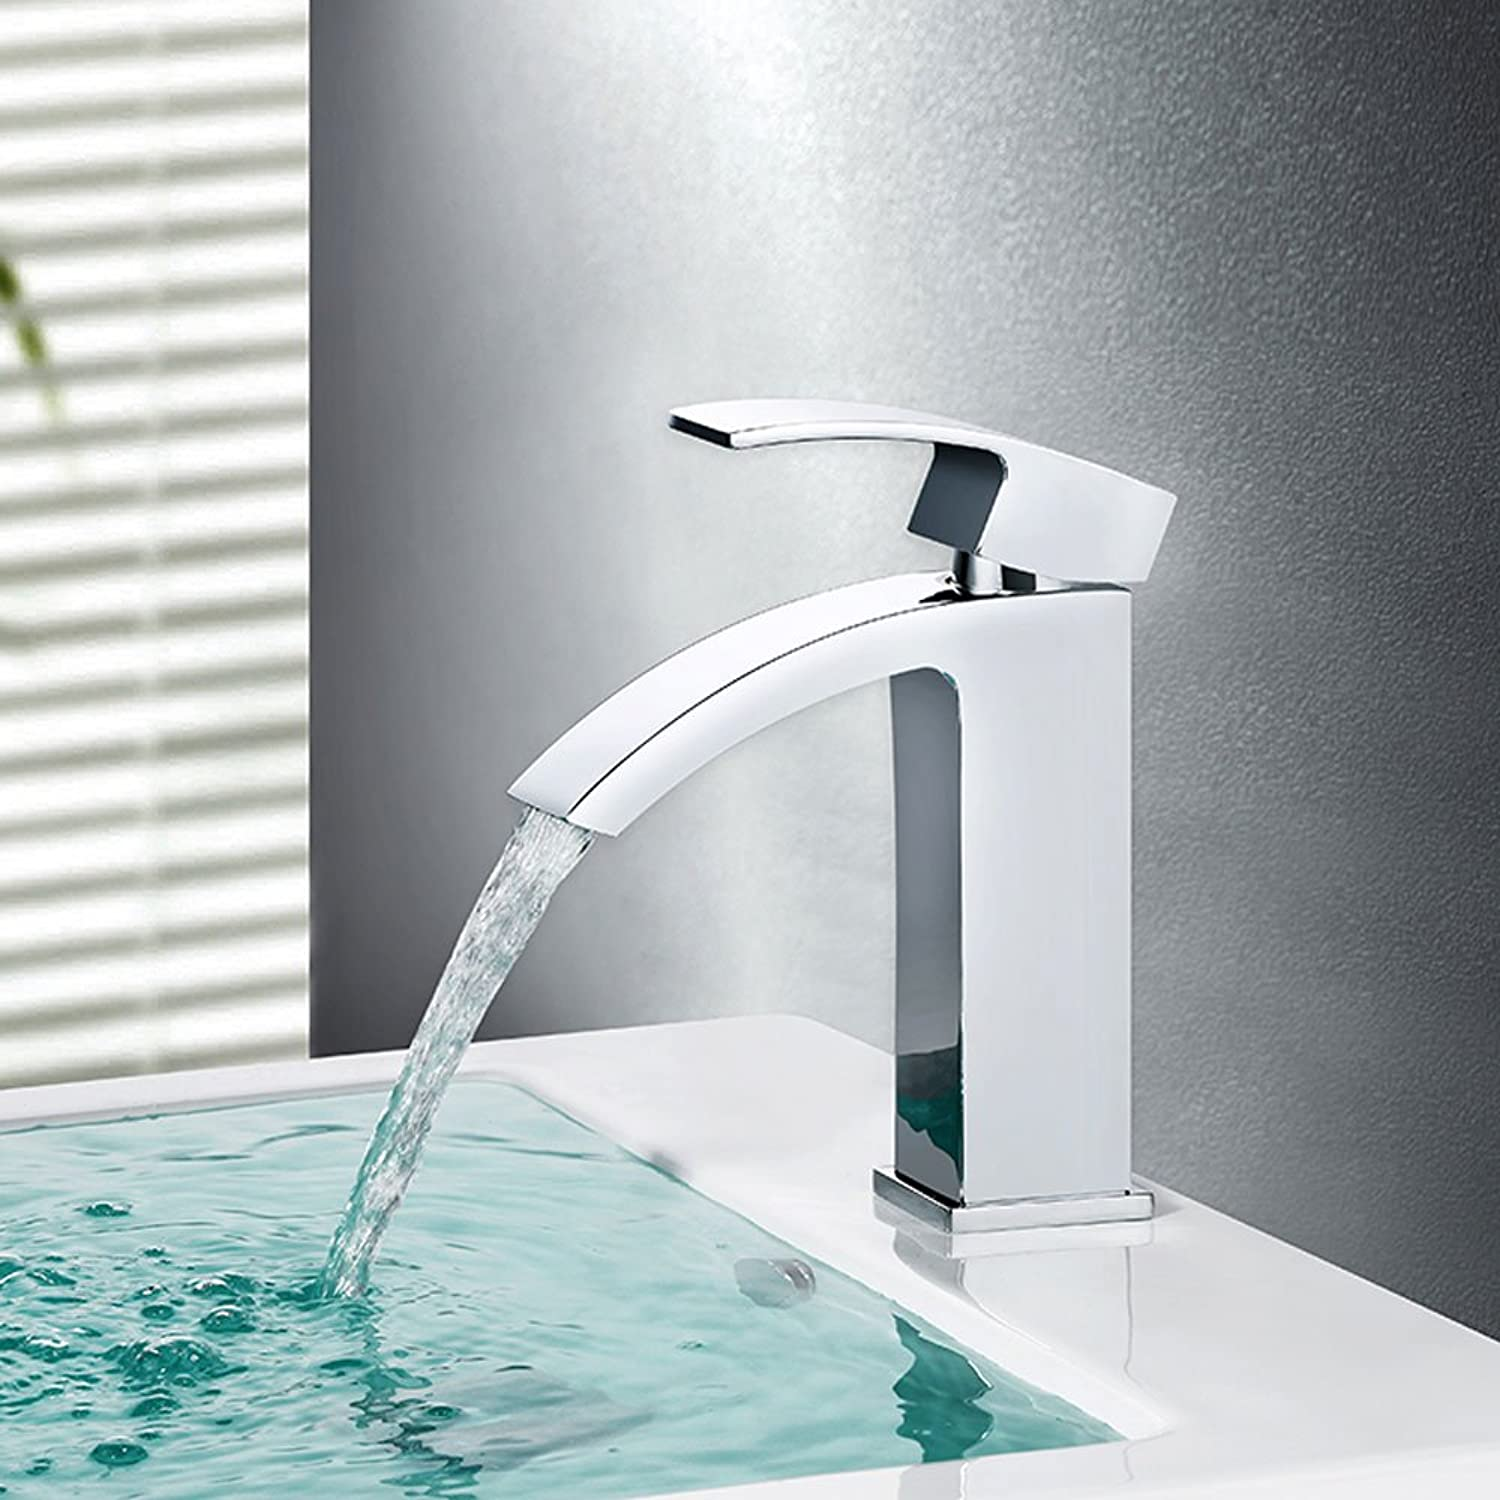 CHENGYI Home Modern Simple Faucet Deck Mount Waterfall Basin Mixer